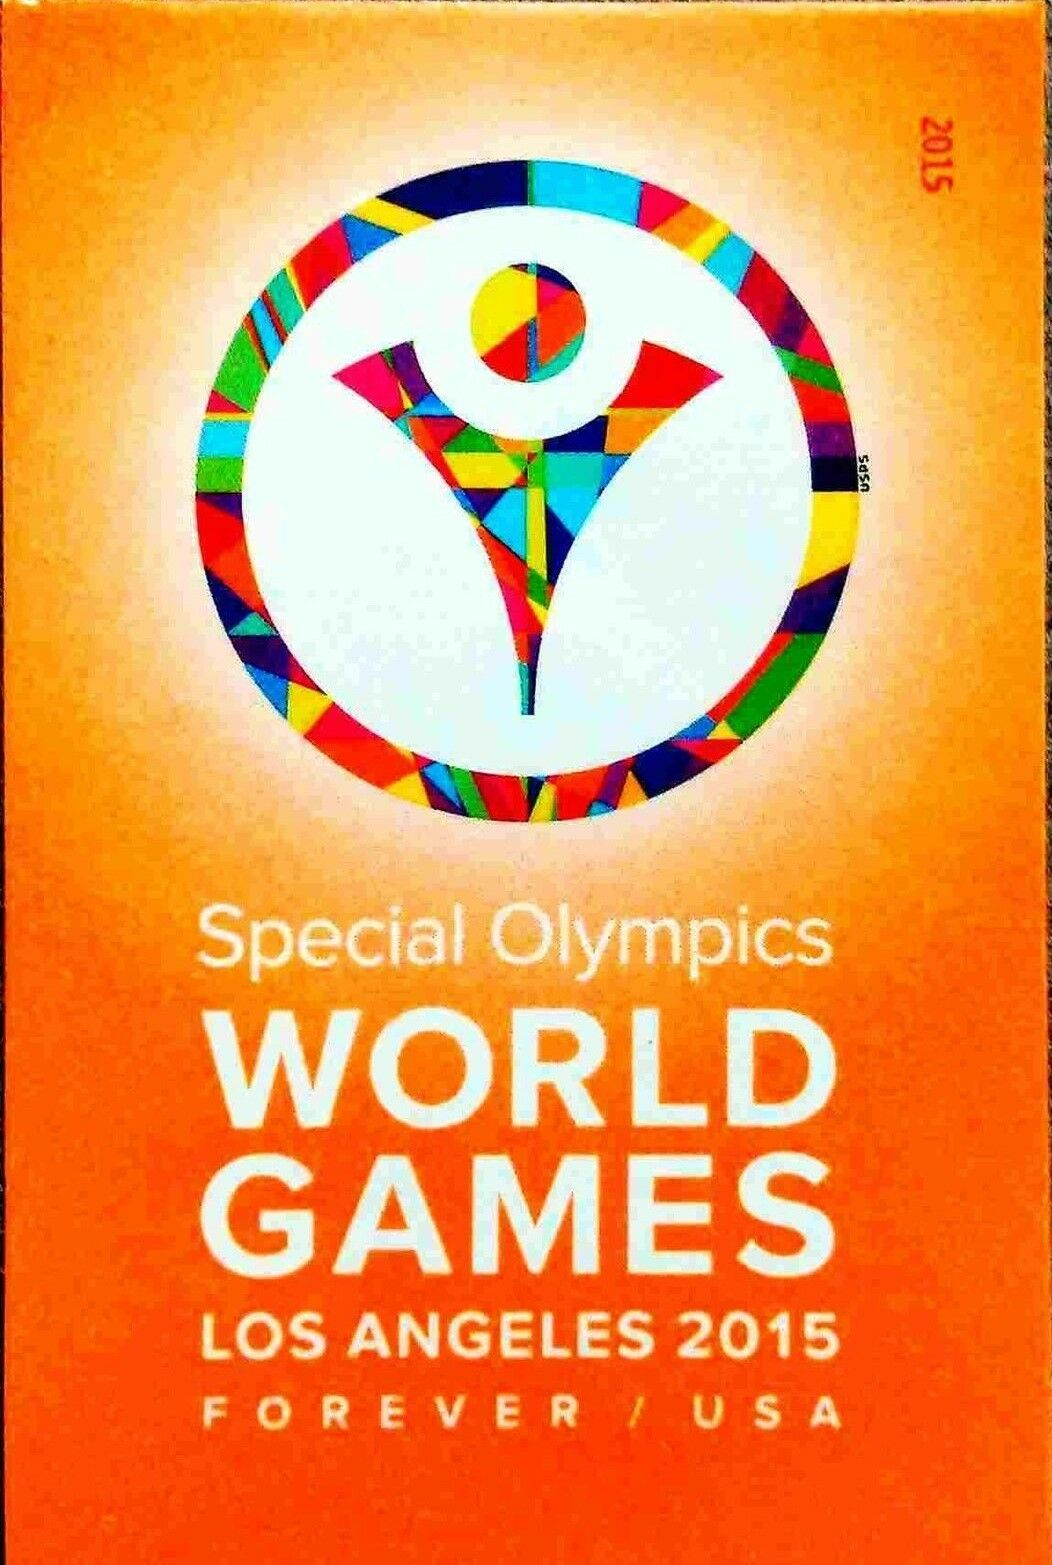 2015 49c Special Olympics World Games Los Angeles, Impe